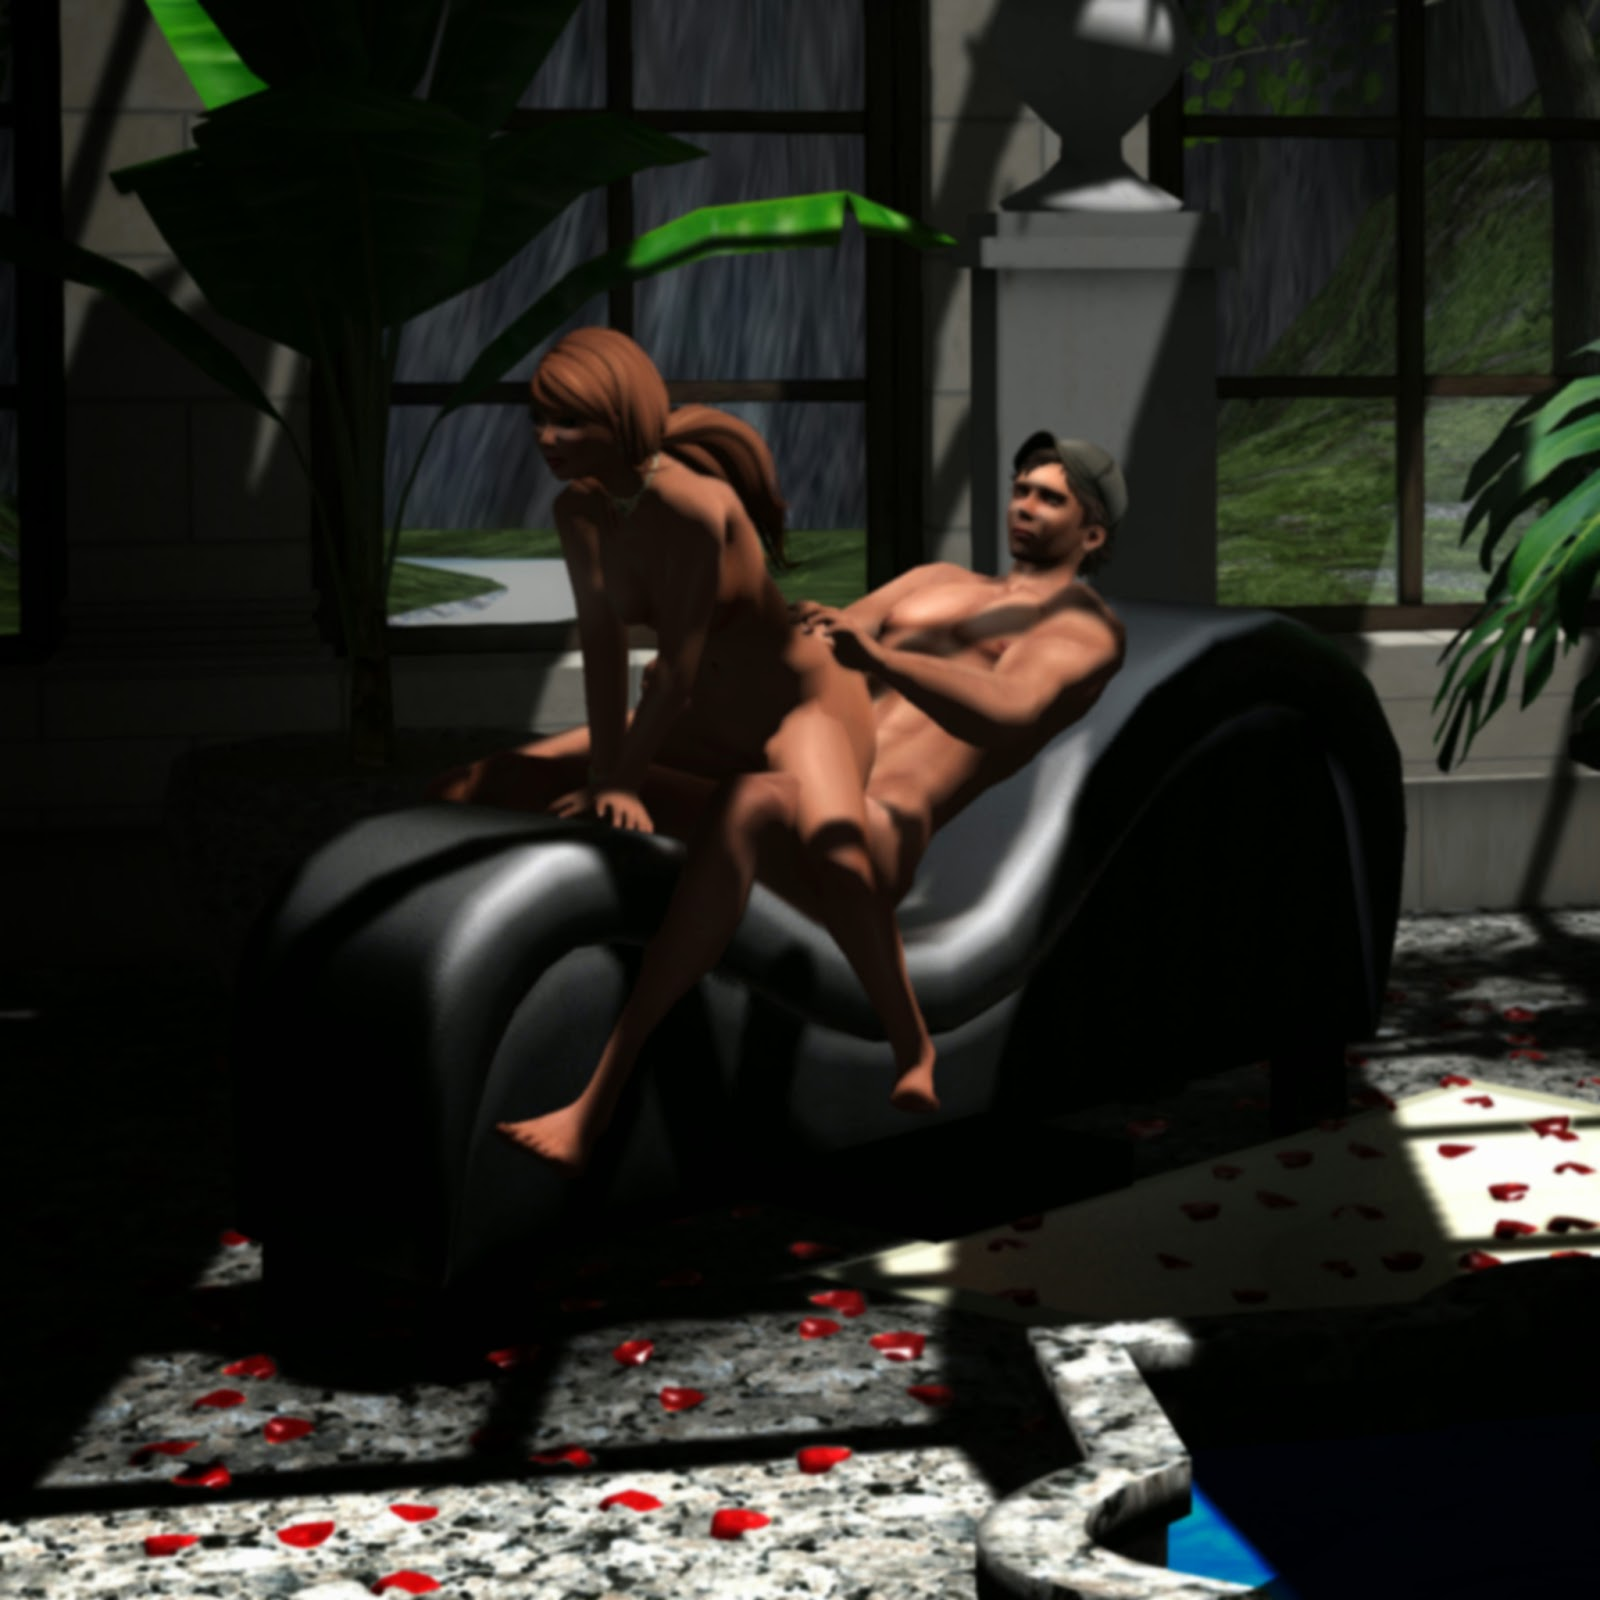 sex chair videos springs for hanging chairs animated living tantra